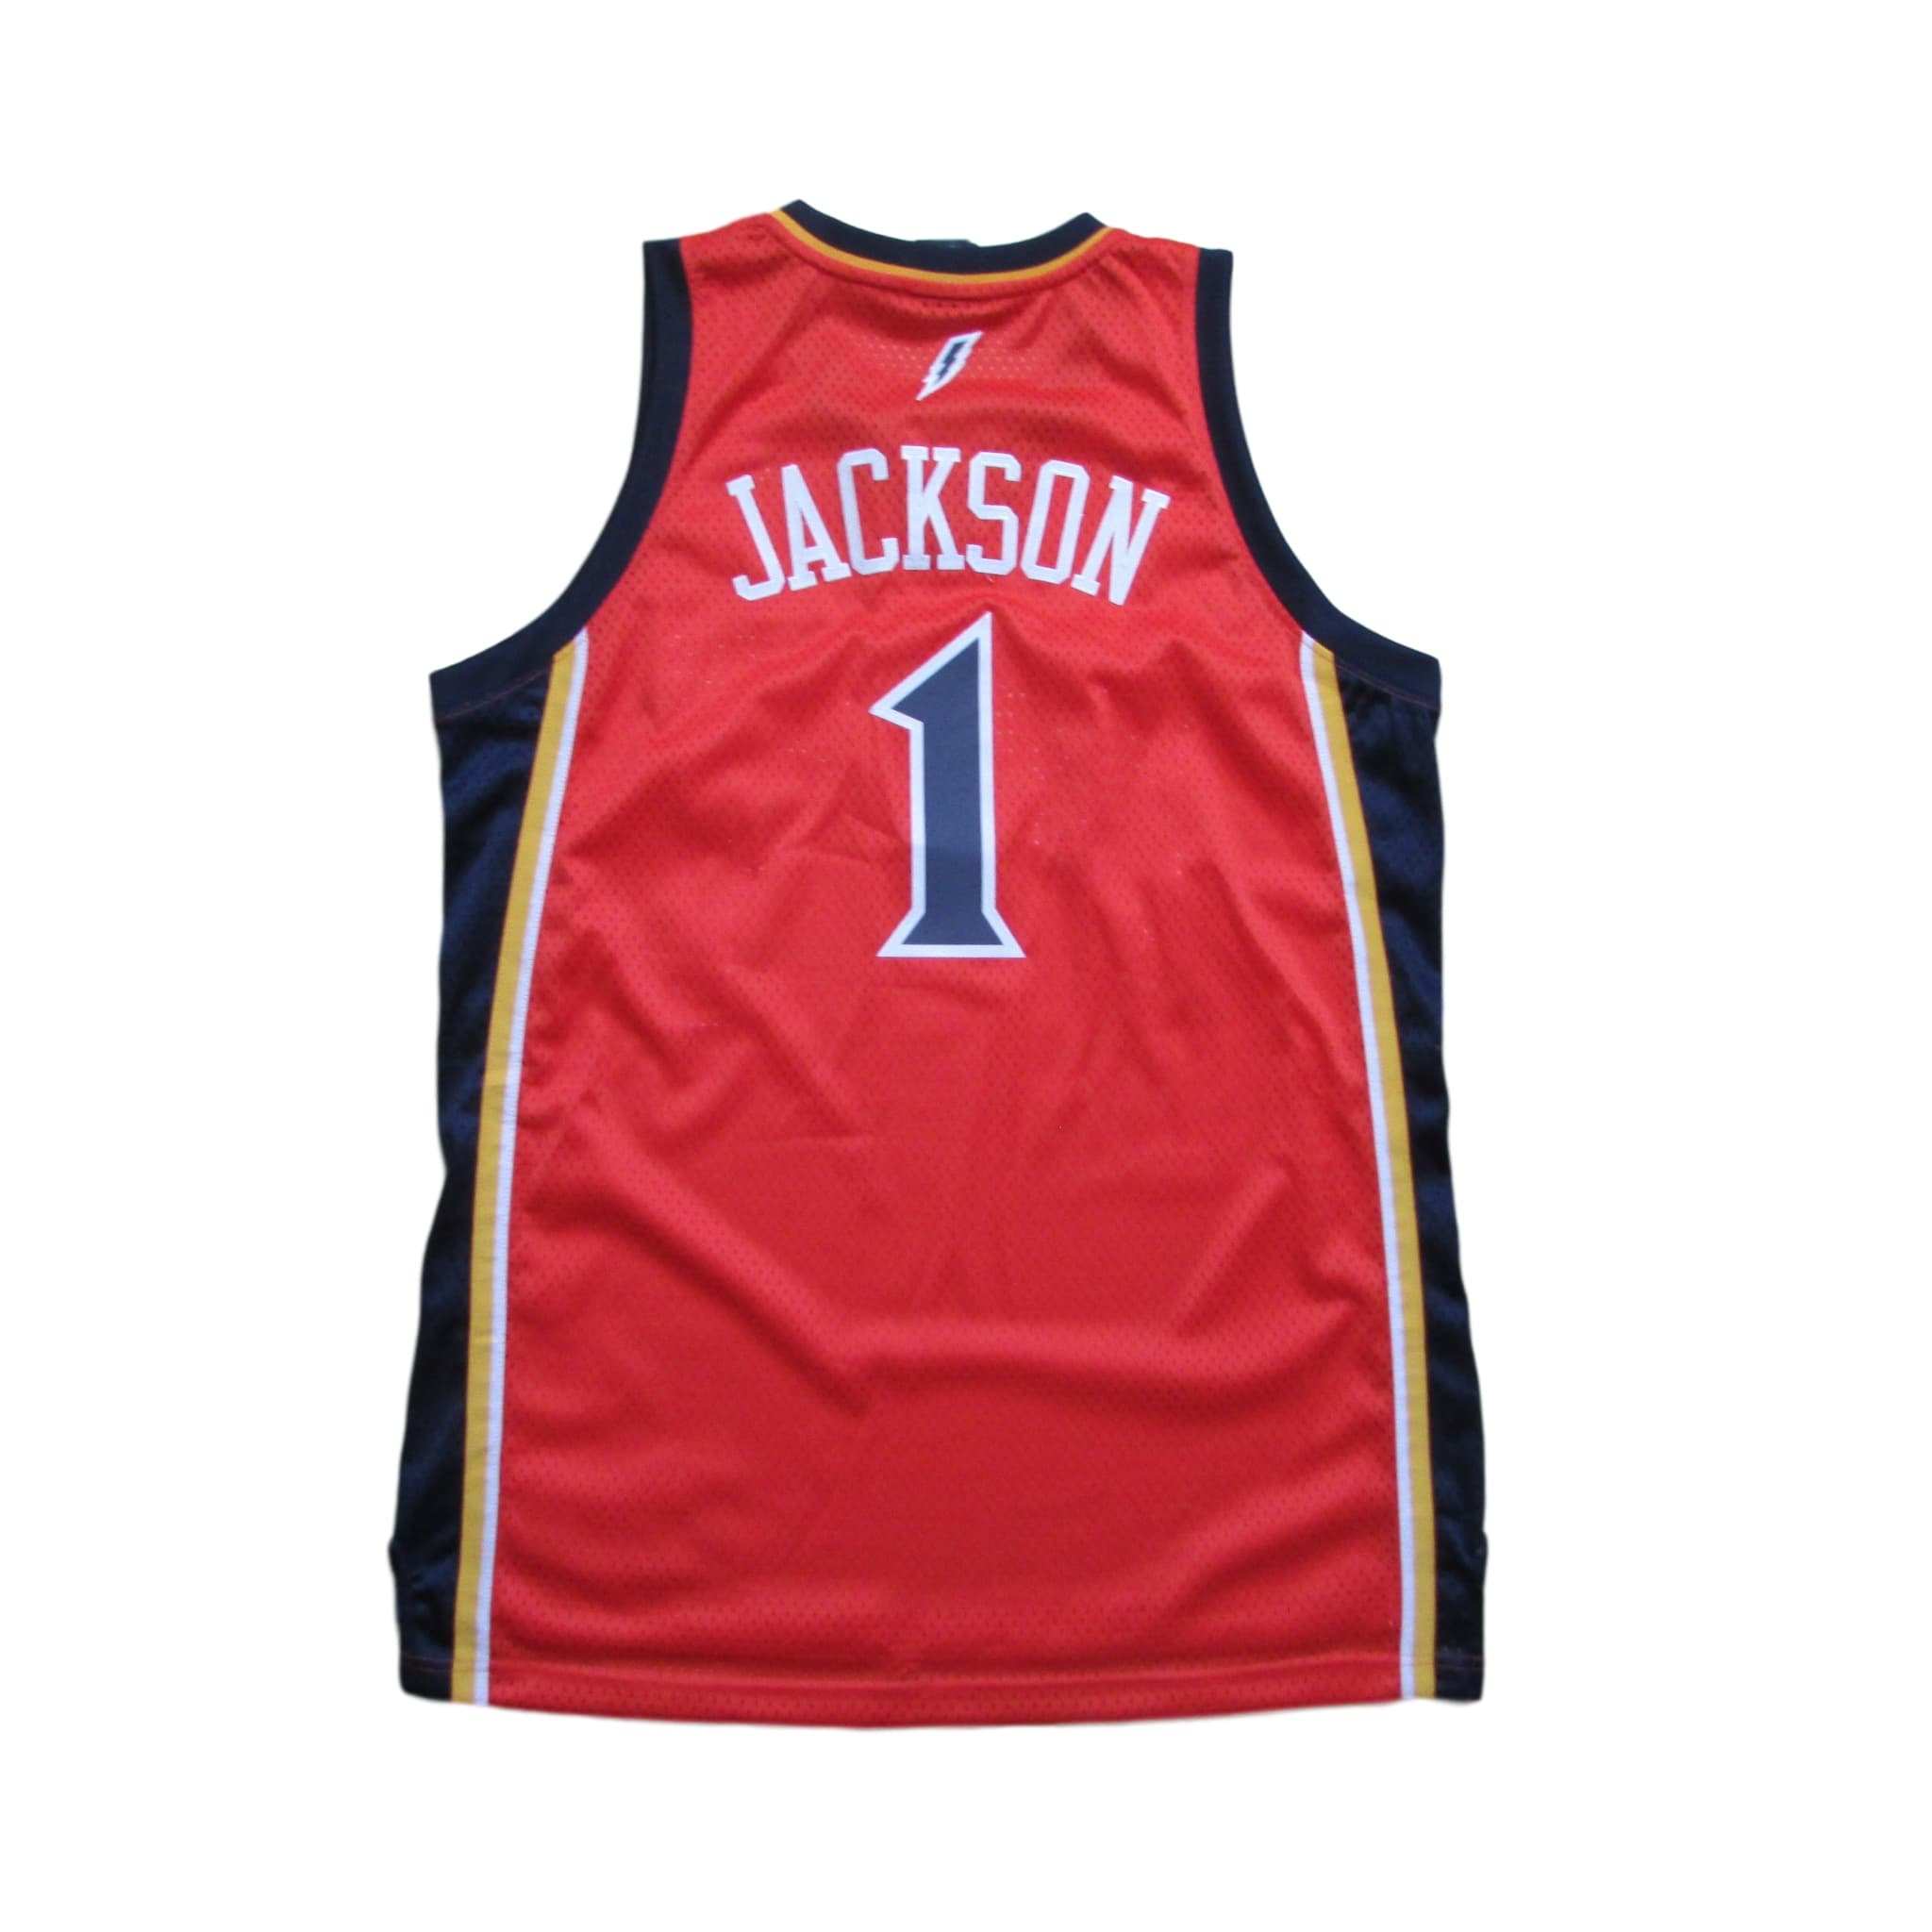 Golden State Warriors Stephen Jackson Basketball We Believe Jersey Sz XL